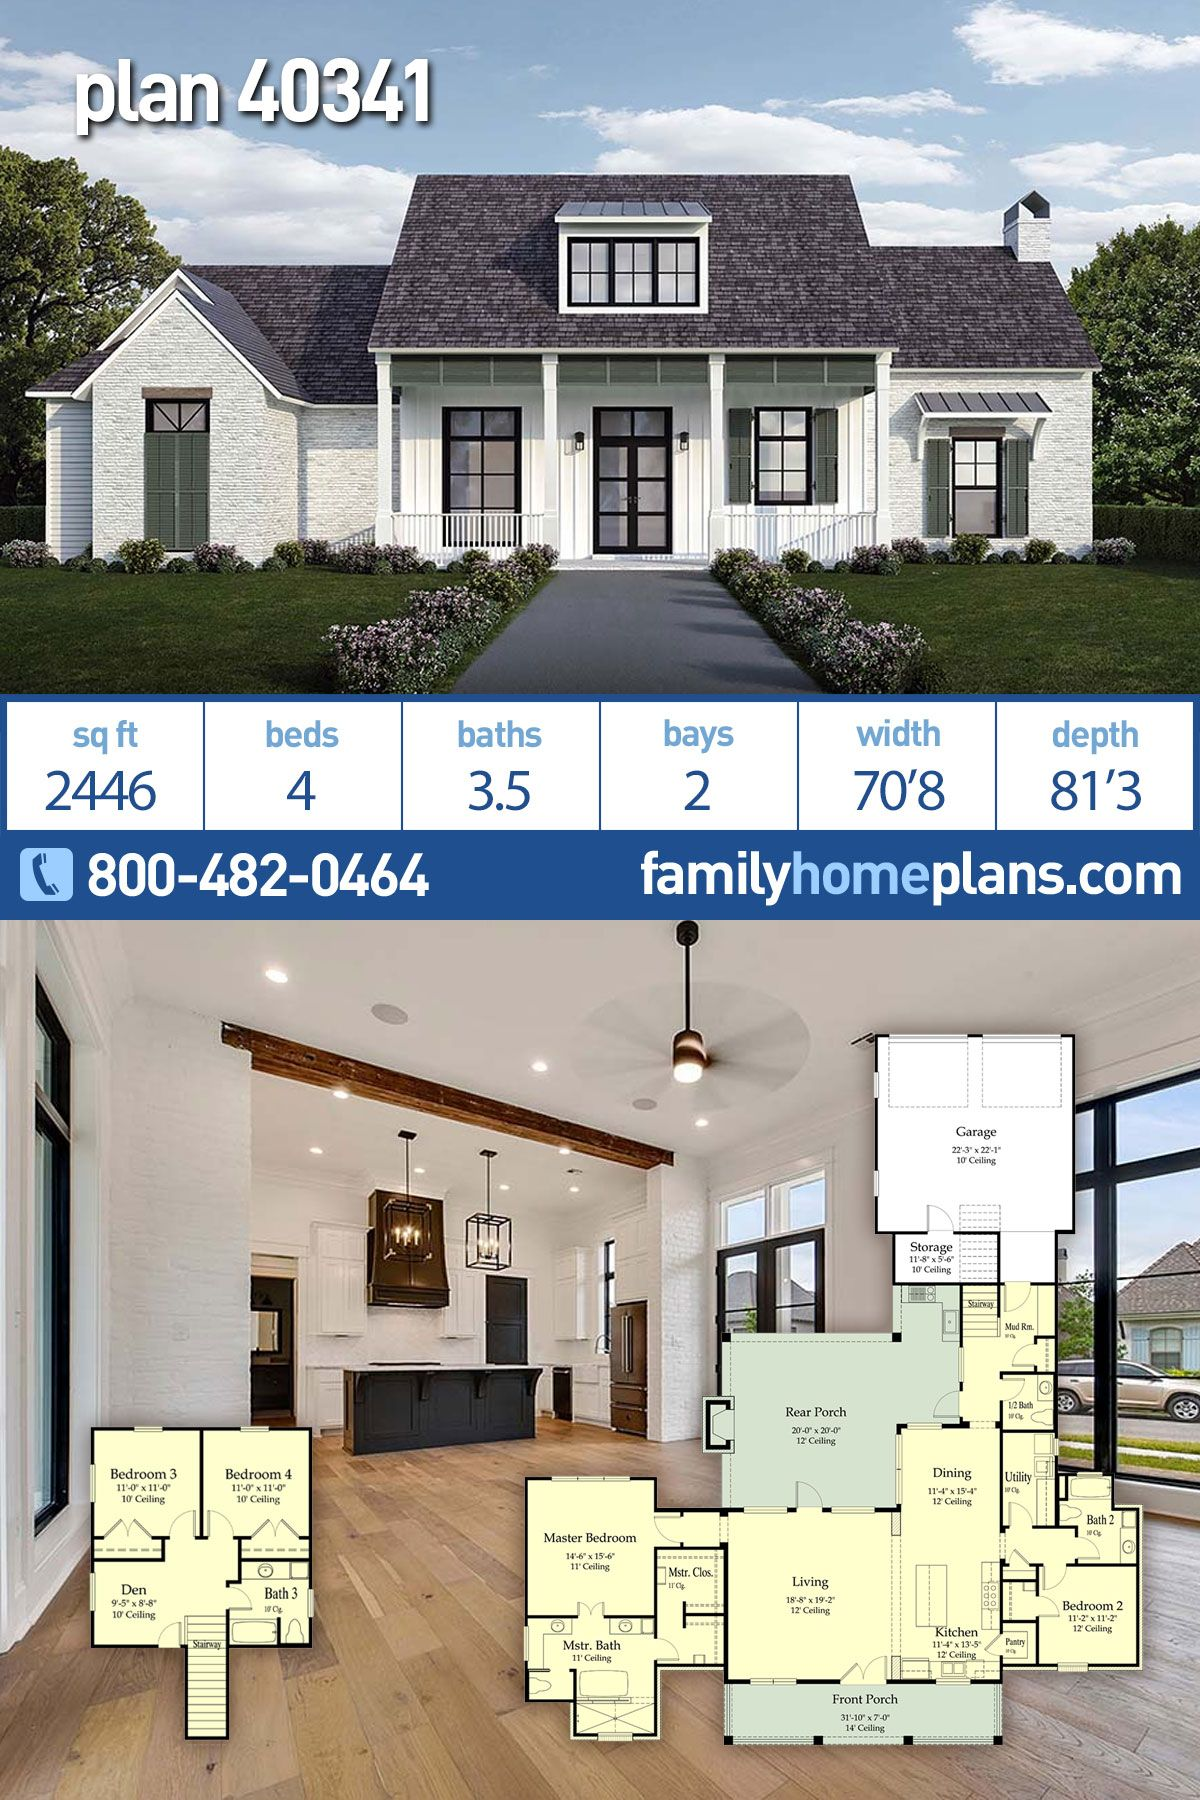 Country Farmhouse Southern Style House Plan 40341 With 4 Bed 4